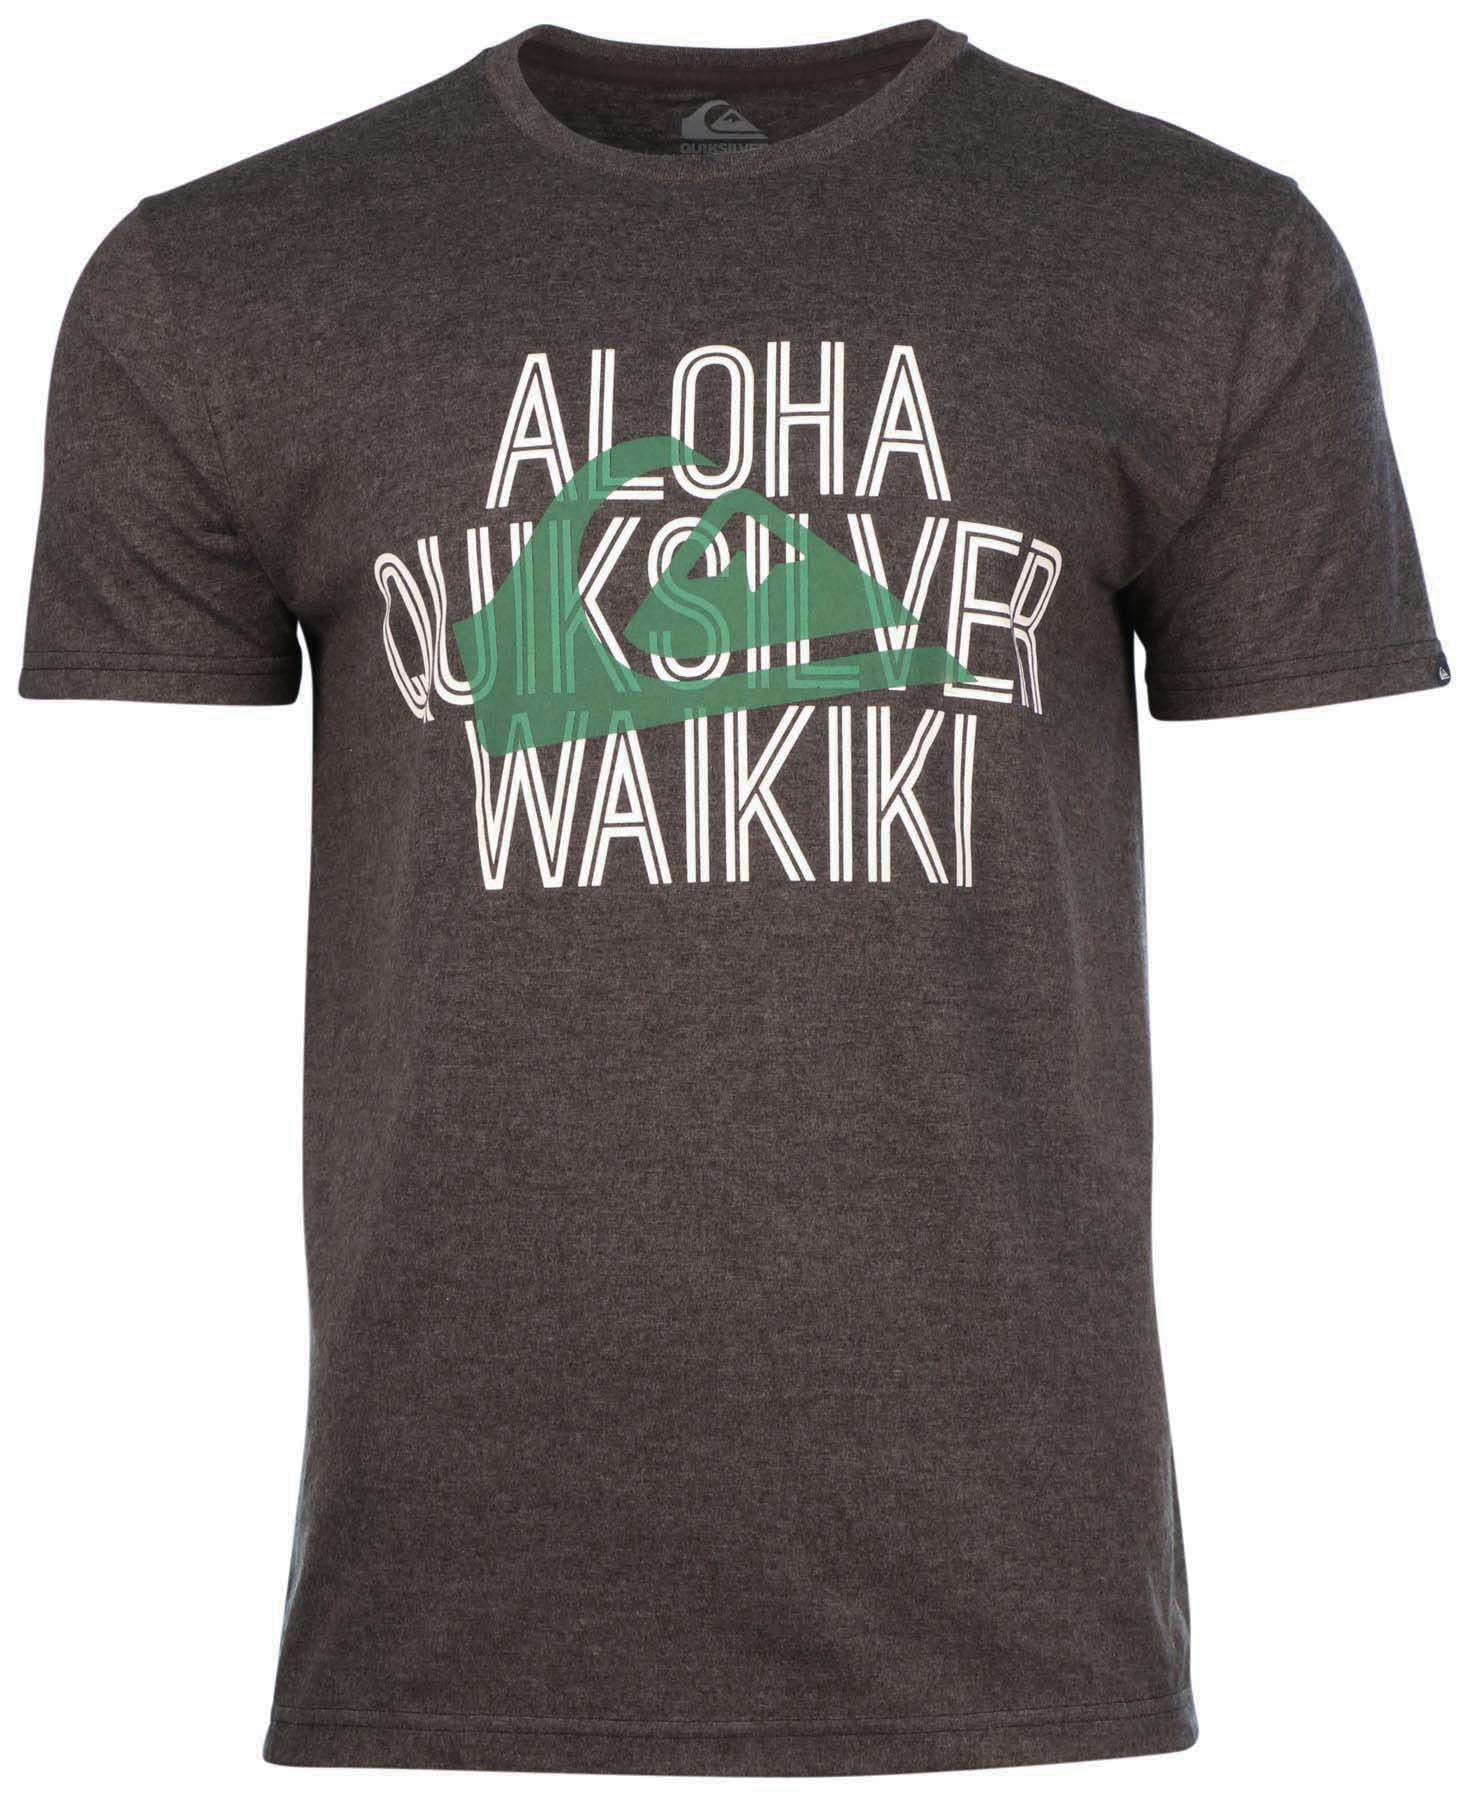 Quiksilver men 39 s aloha hawaiian graphic t shirt ebay for Hawaiian graphic t shirts